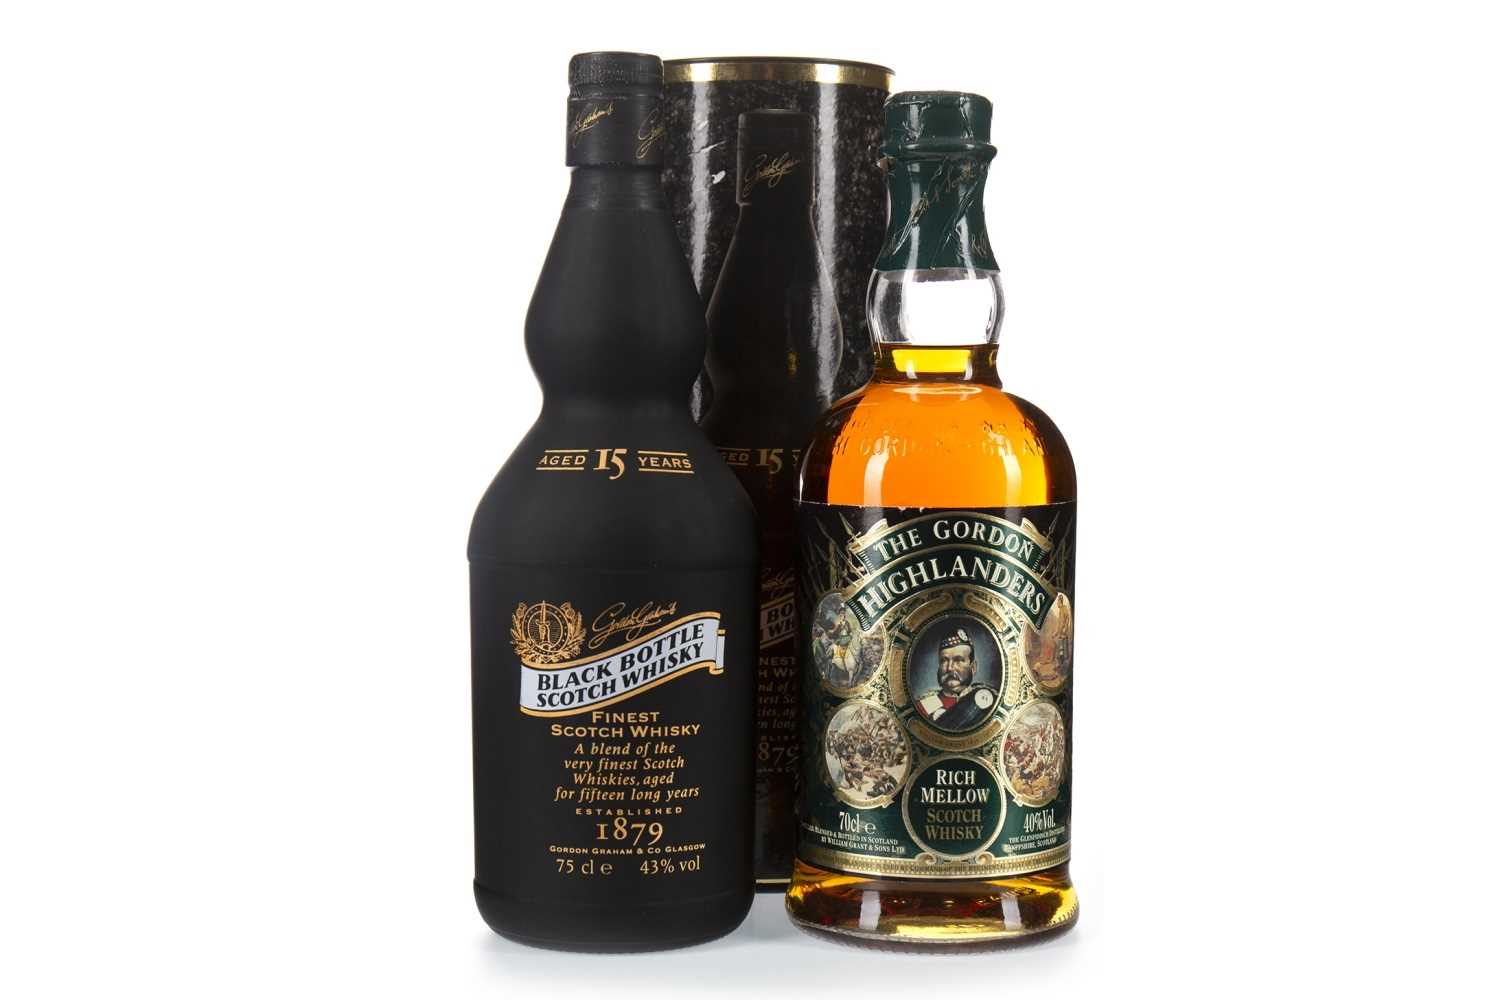 Lot 401-BLACK BOTTLE AGED 15 YEARS & GORDON HIGHLANDER